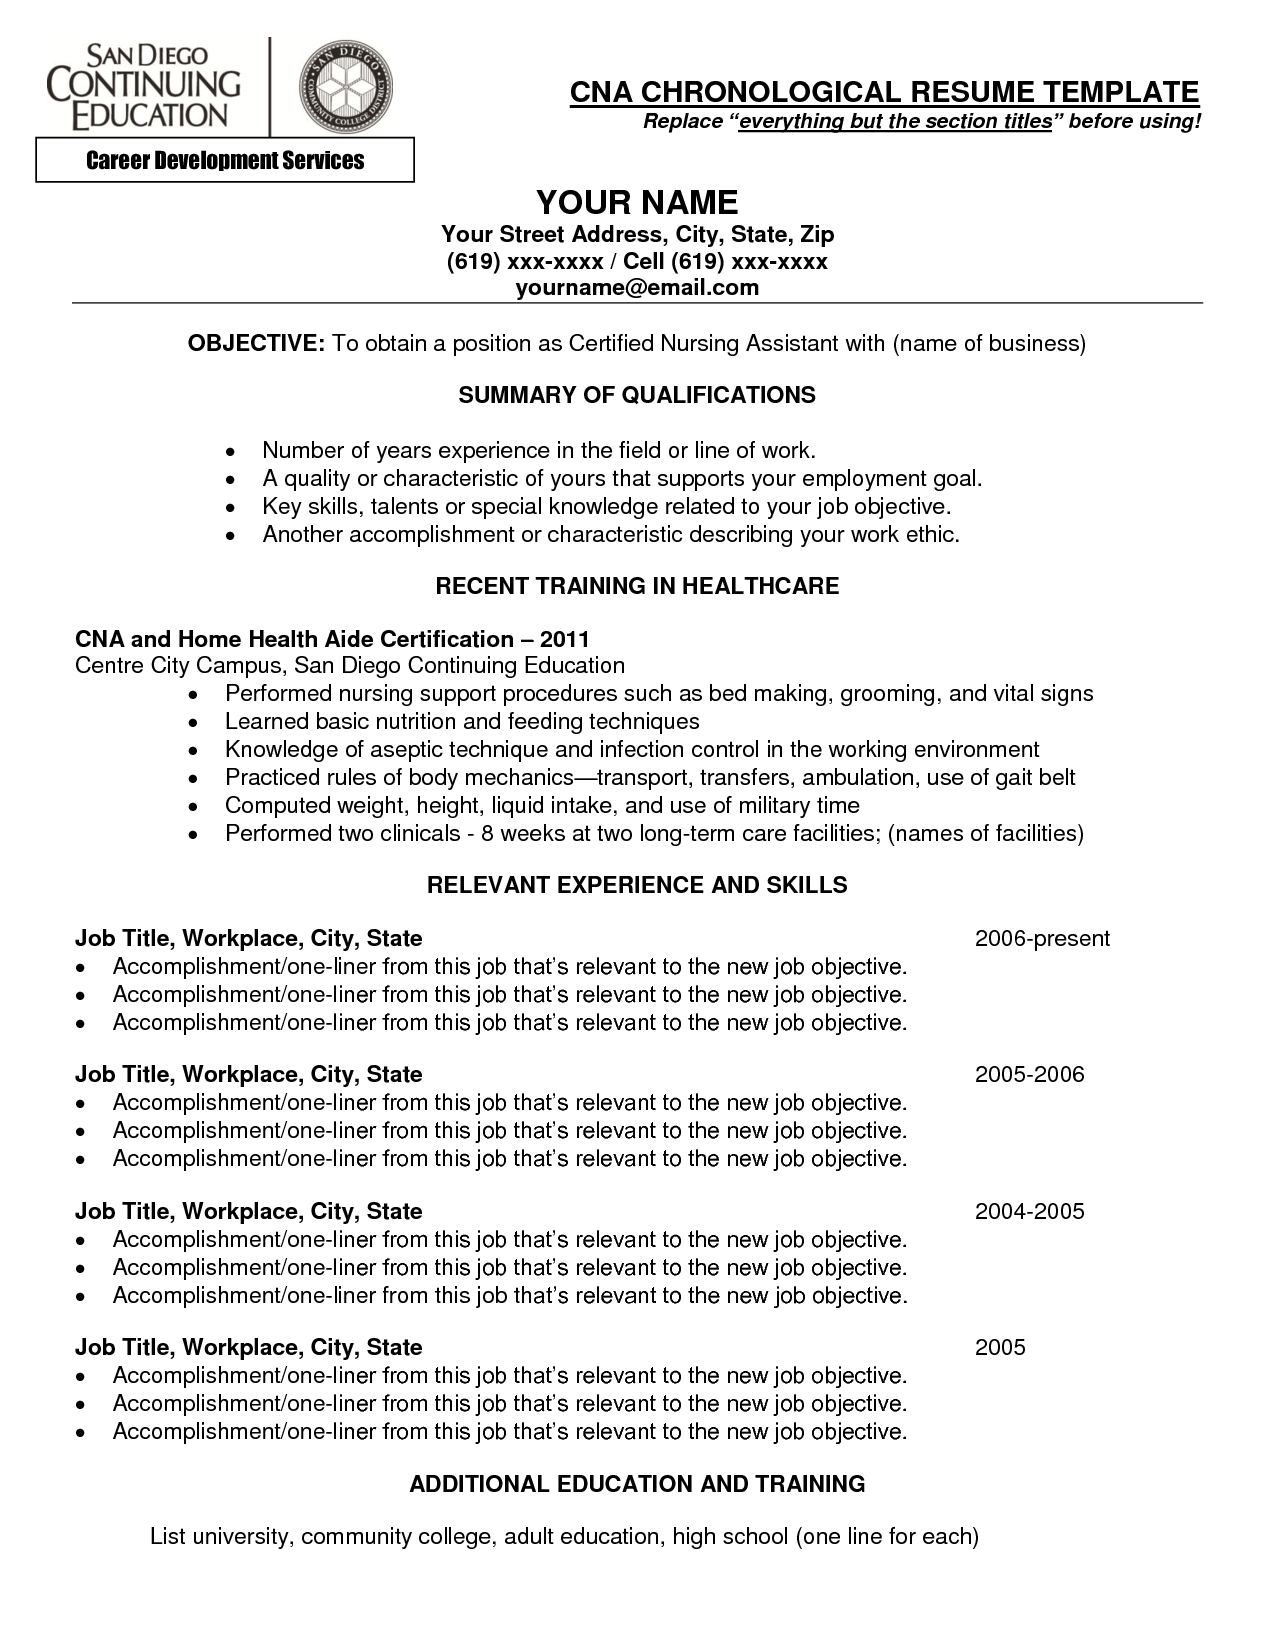 CNA chronological resume template with relevant experience and skills list of cna skills for resume